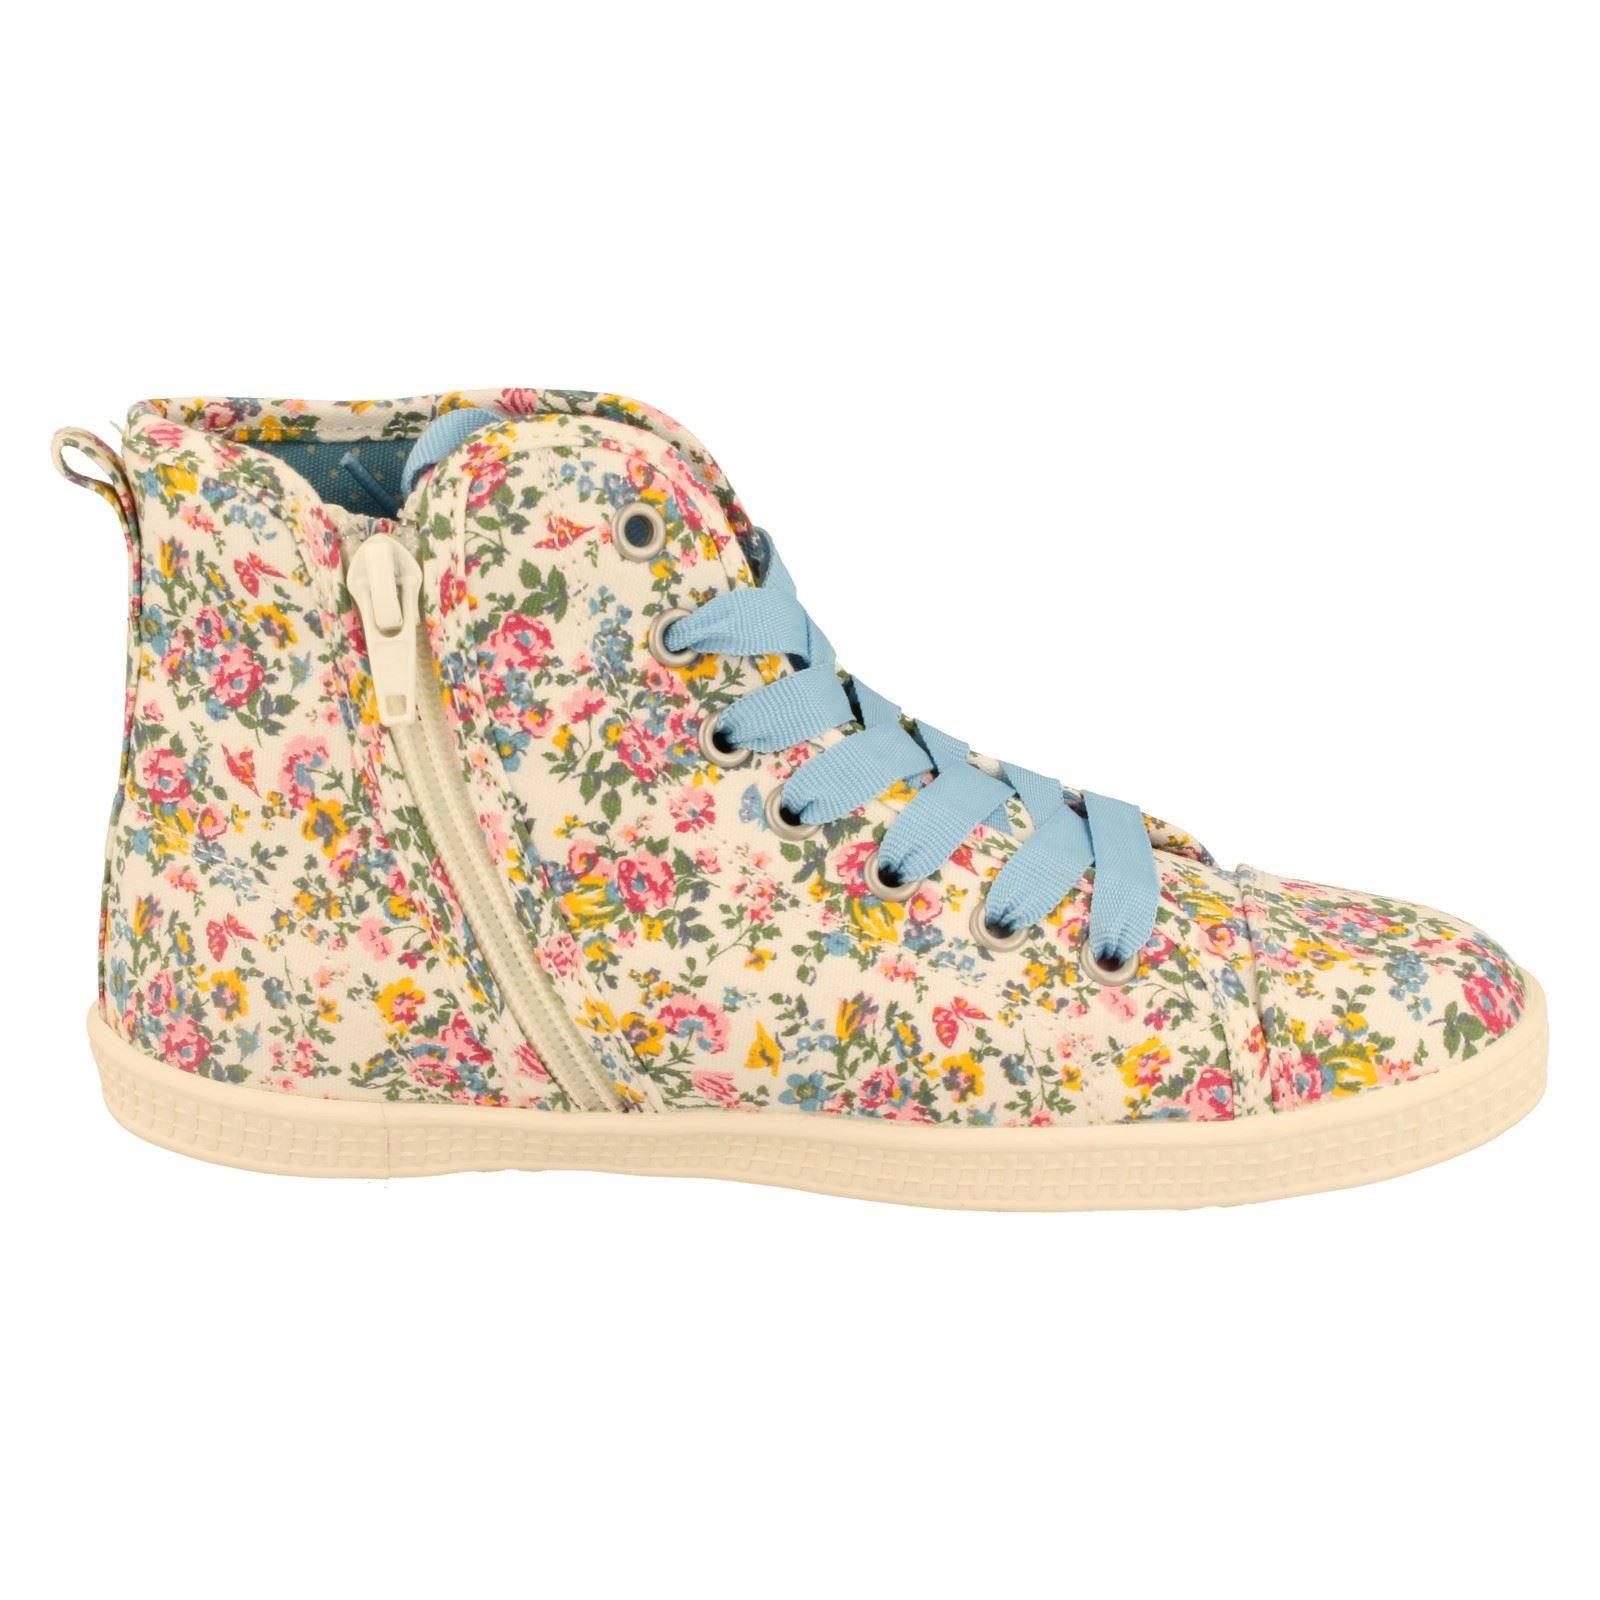 Girls Start Rite Ankle Boot The Style Ditsy -W